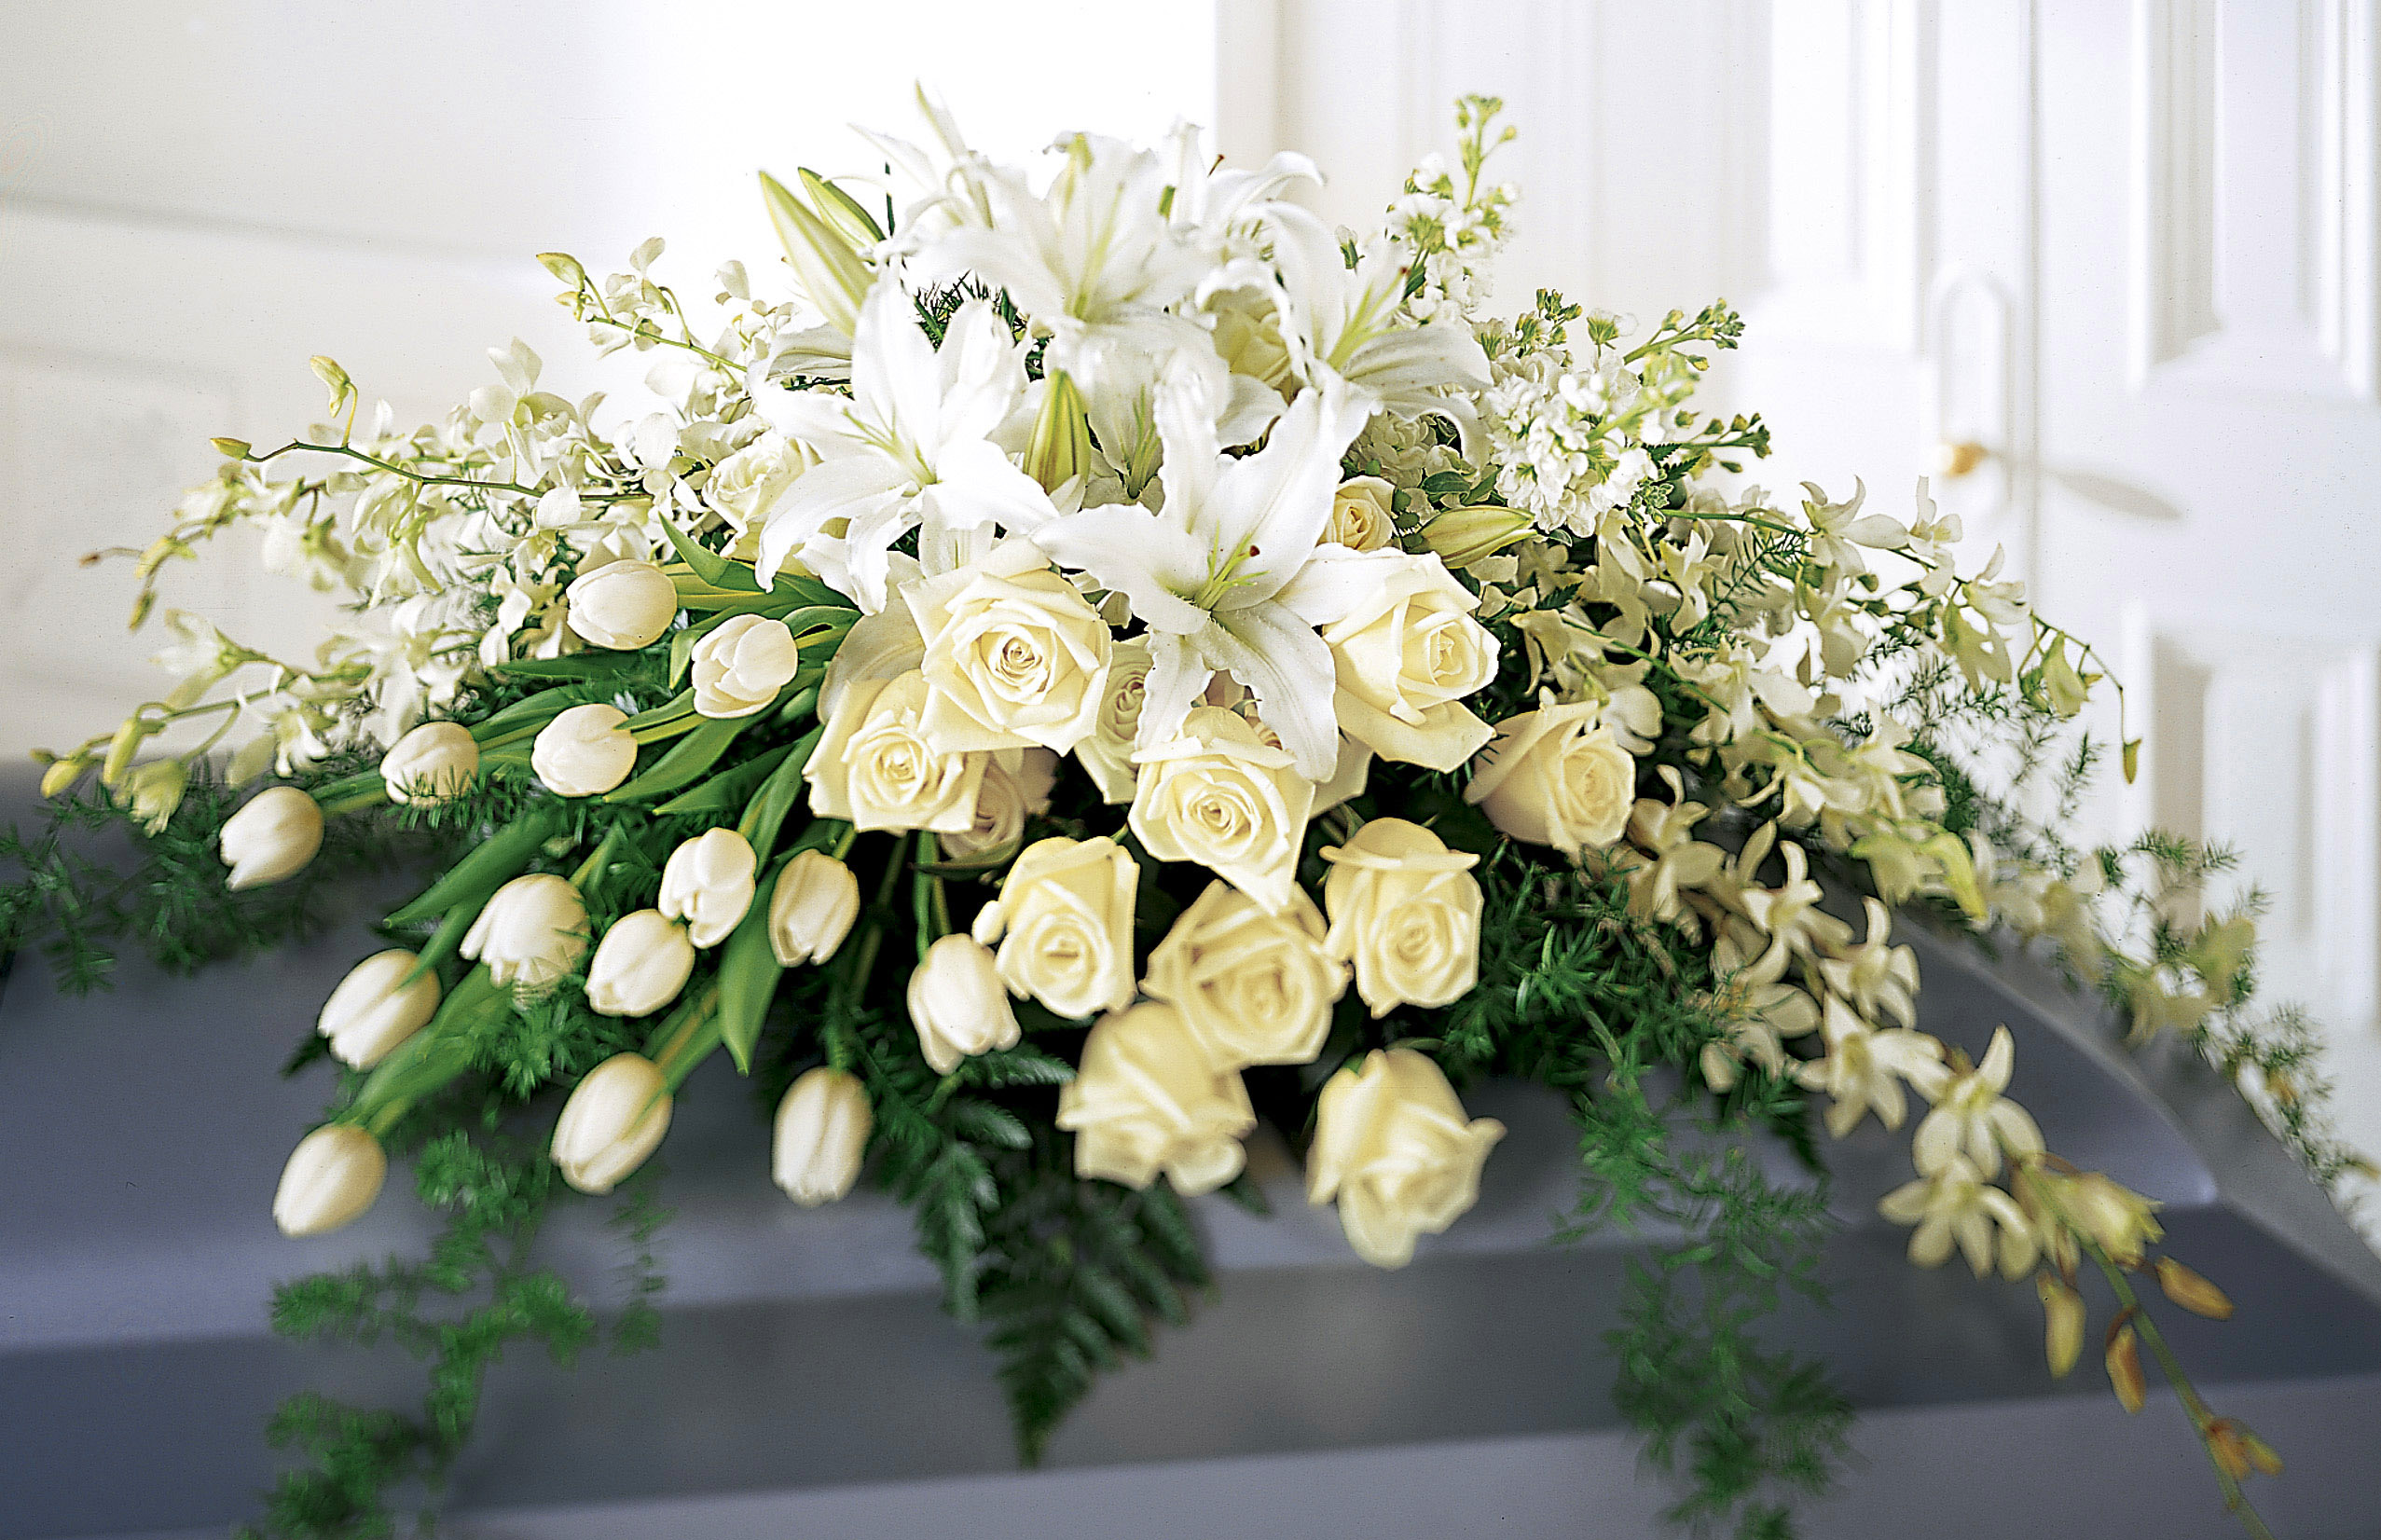 4 Popular Funeral Flower Meanings